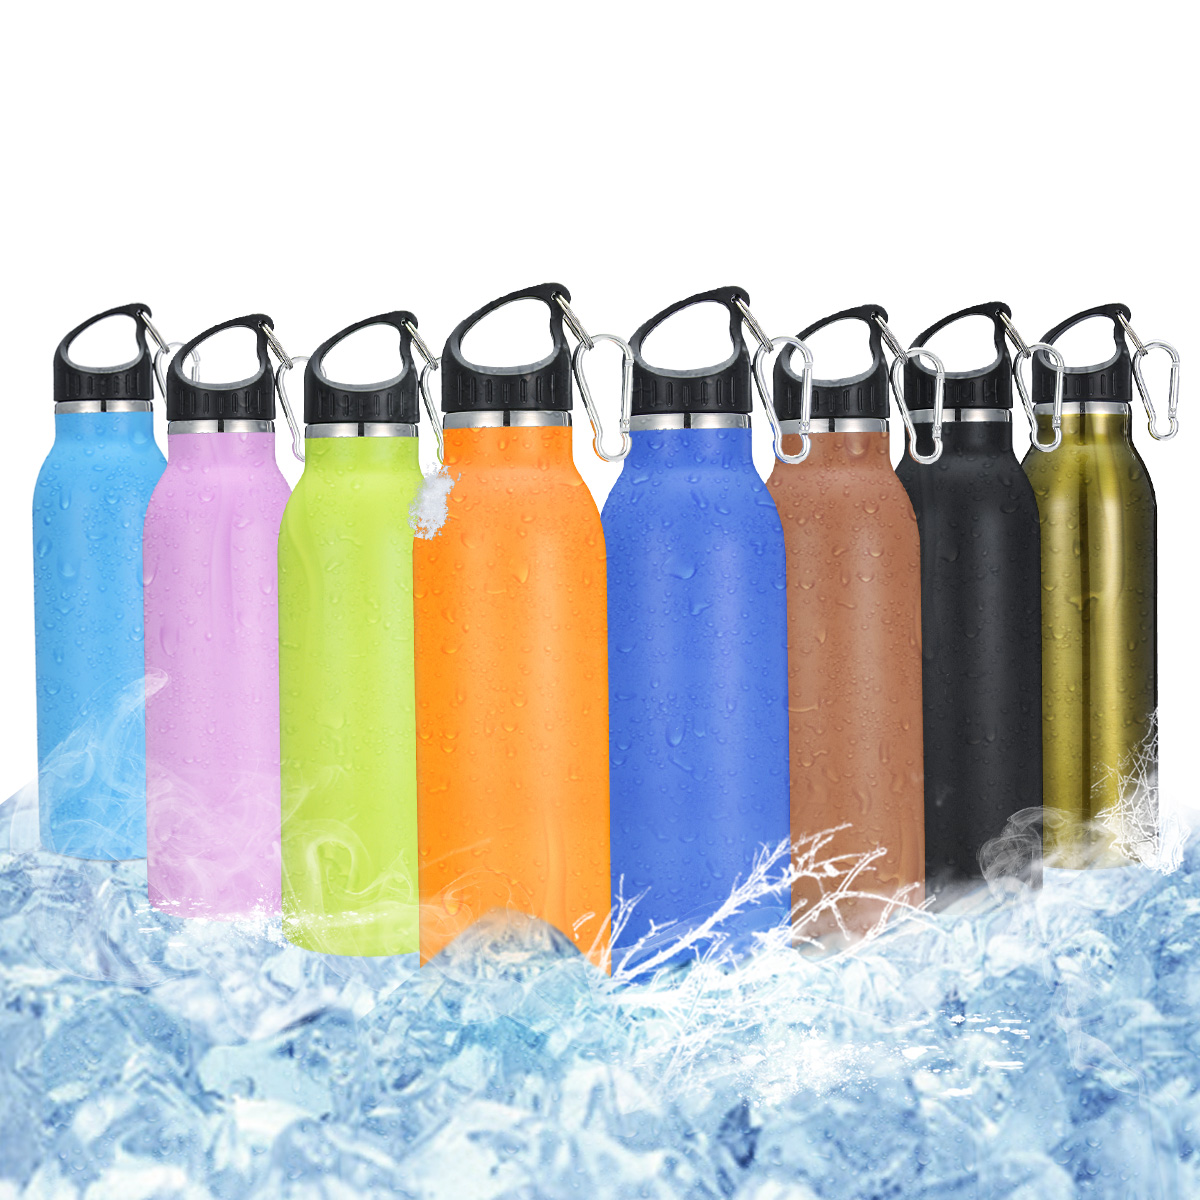 KING DO WAY Vacuum Stainless Steel Water Bottle with 8 Colors Available Simple Shape for Work, sportsbottle Outdoor Transport, Travel Use